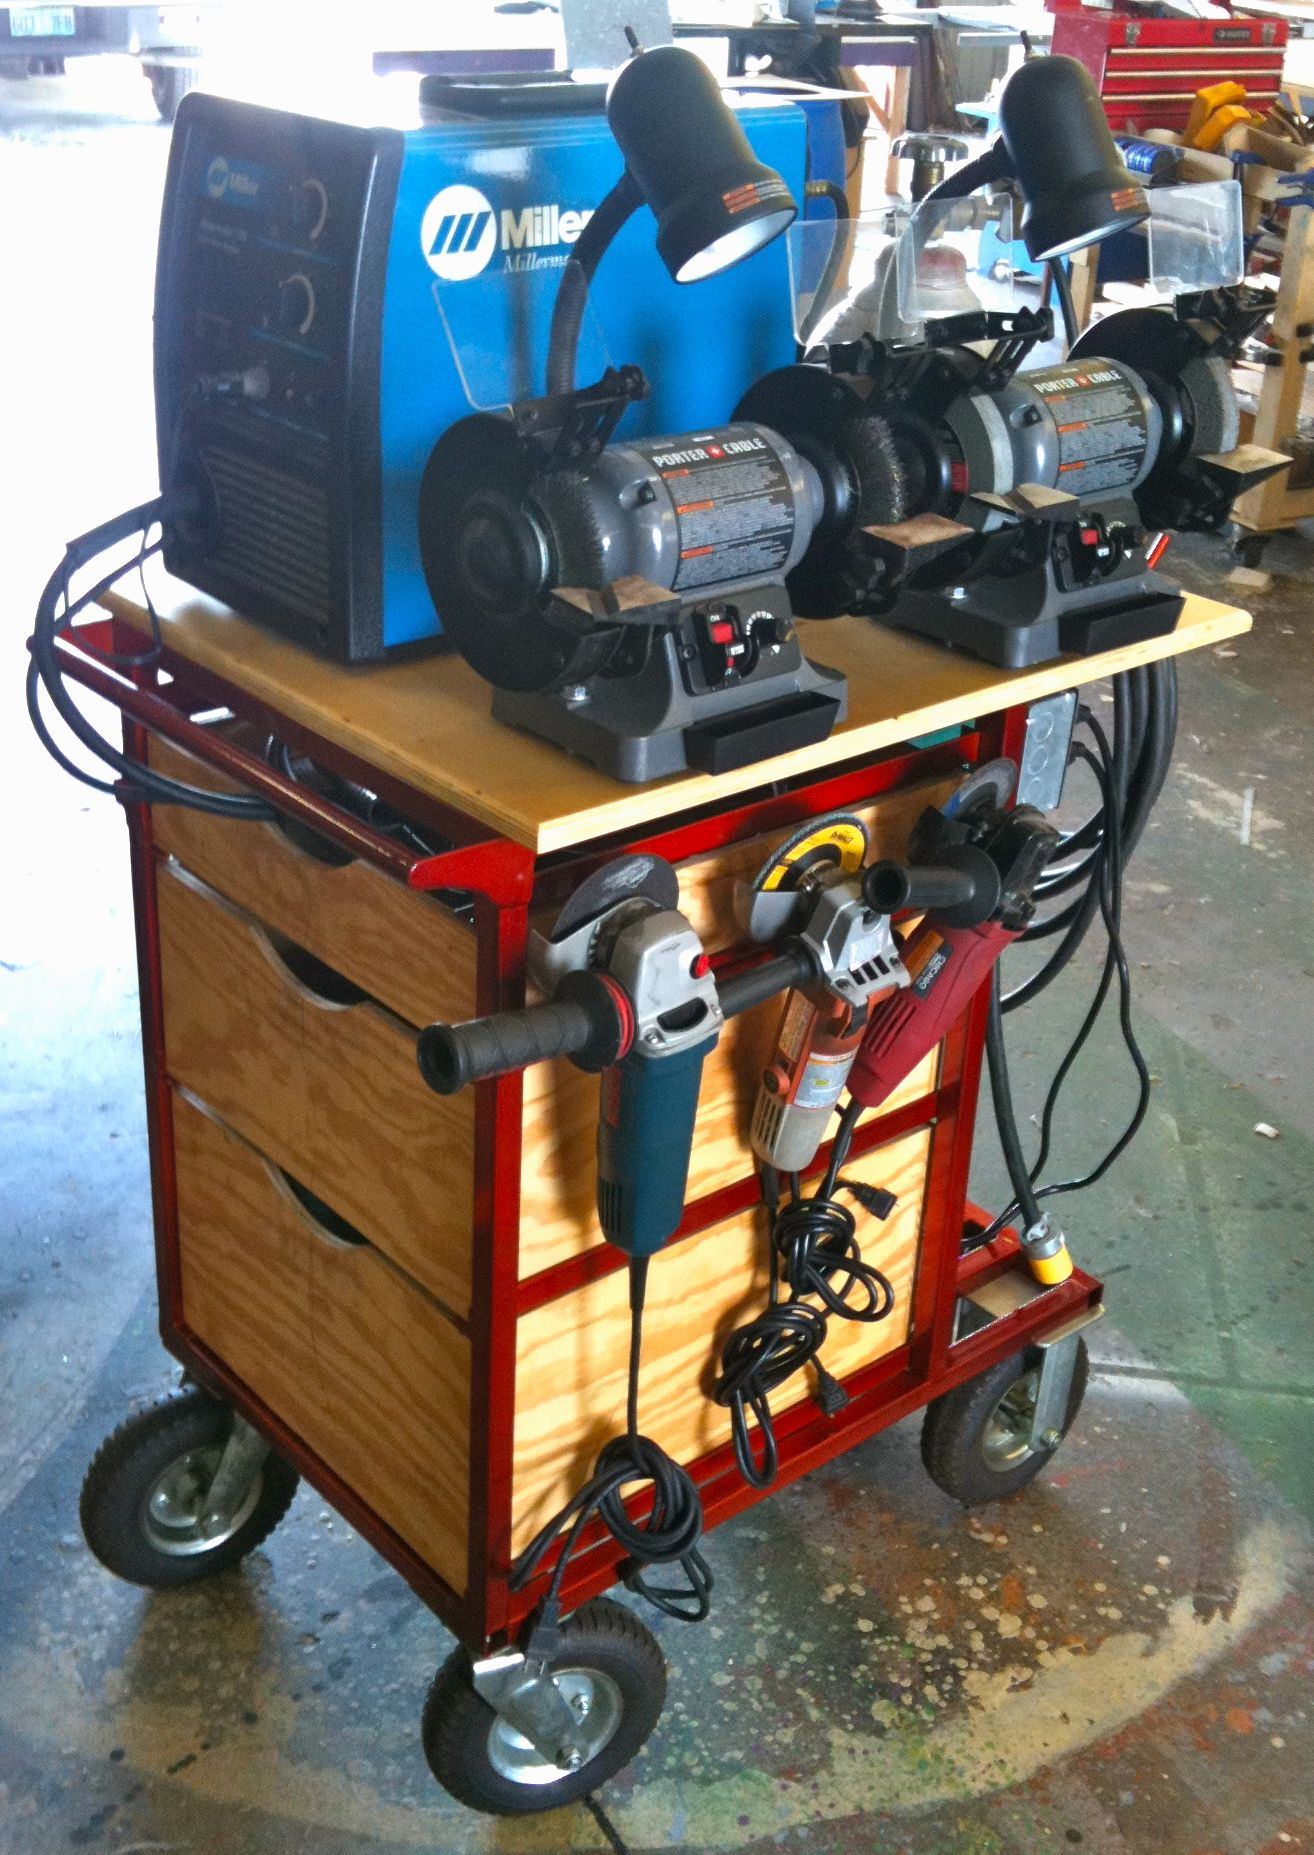 Welding Cart Diagram Wiring Libraries For Mig Welder Tools Grinders And Accessories Woodwelding